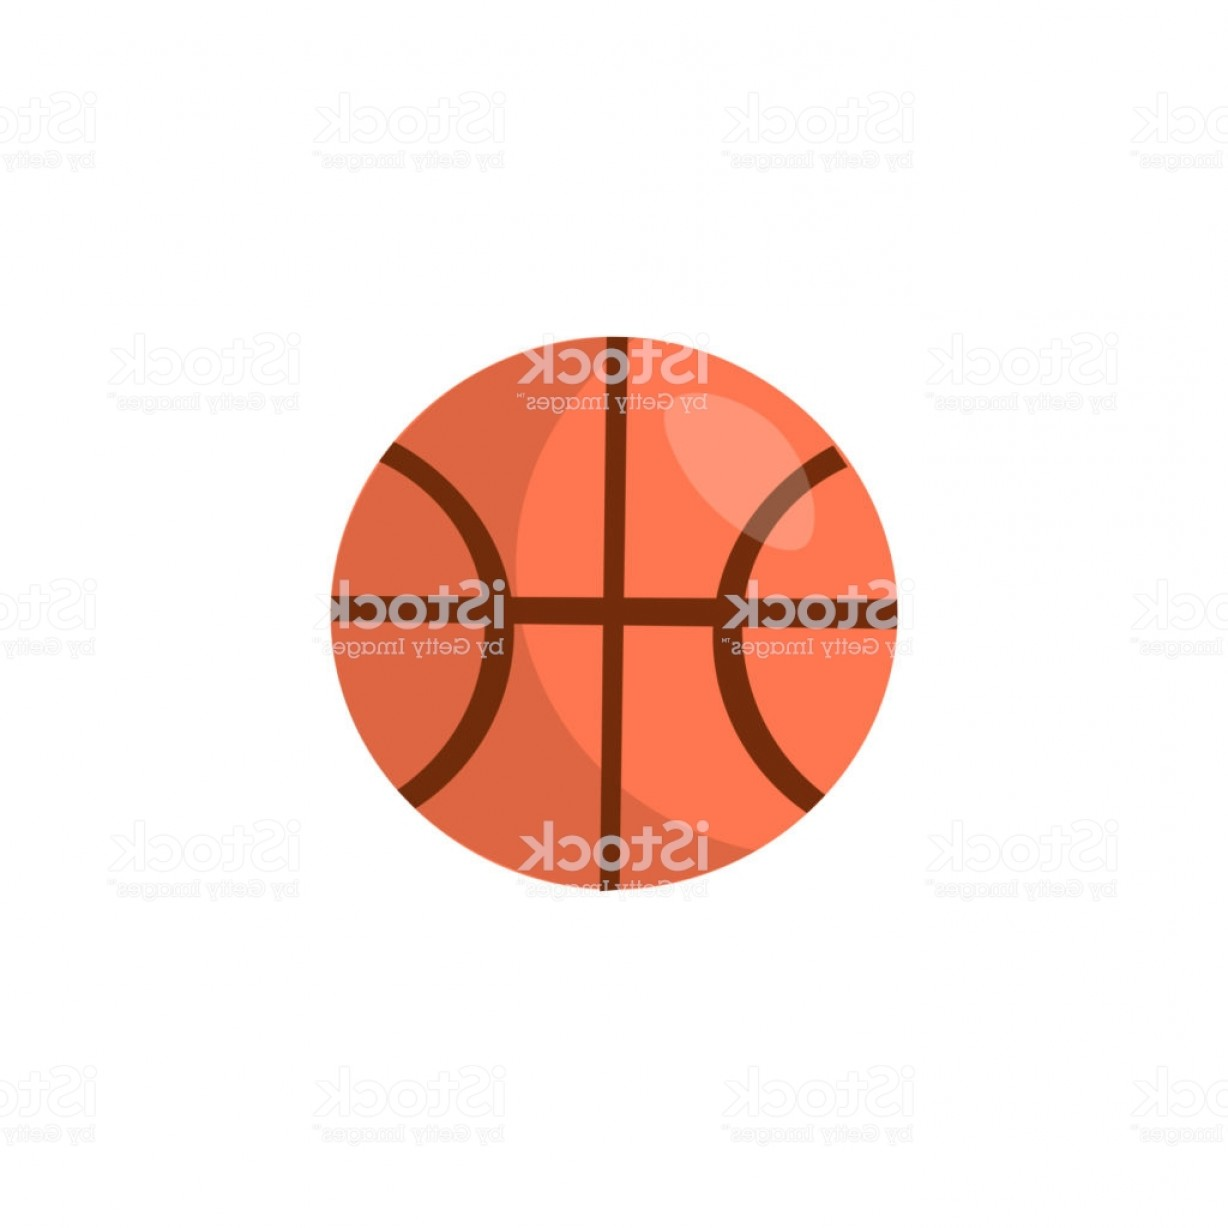 Cartoon Basketball Vector: Basketball Vector Cartoon Icon Round Orange Ball For Basketball Cartoon Logo Gm